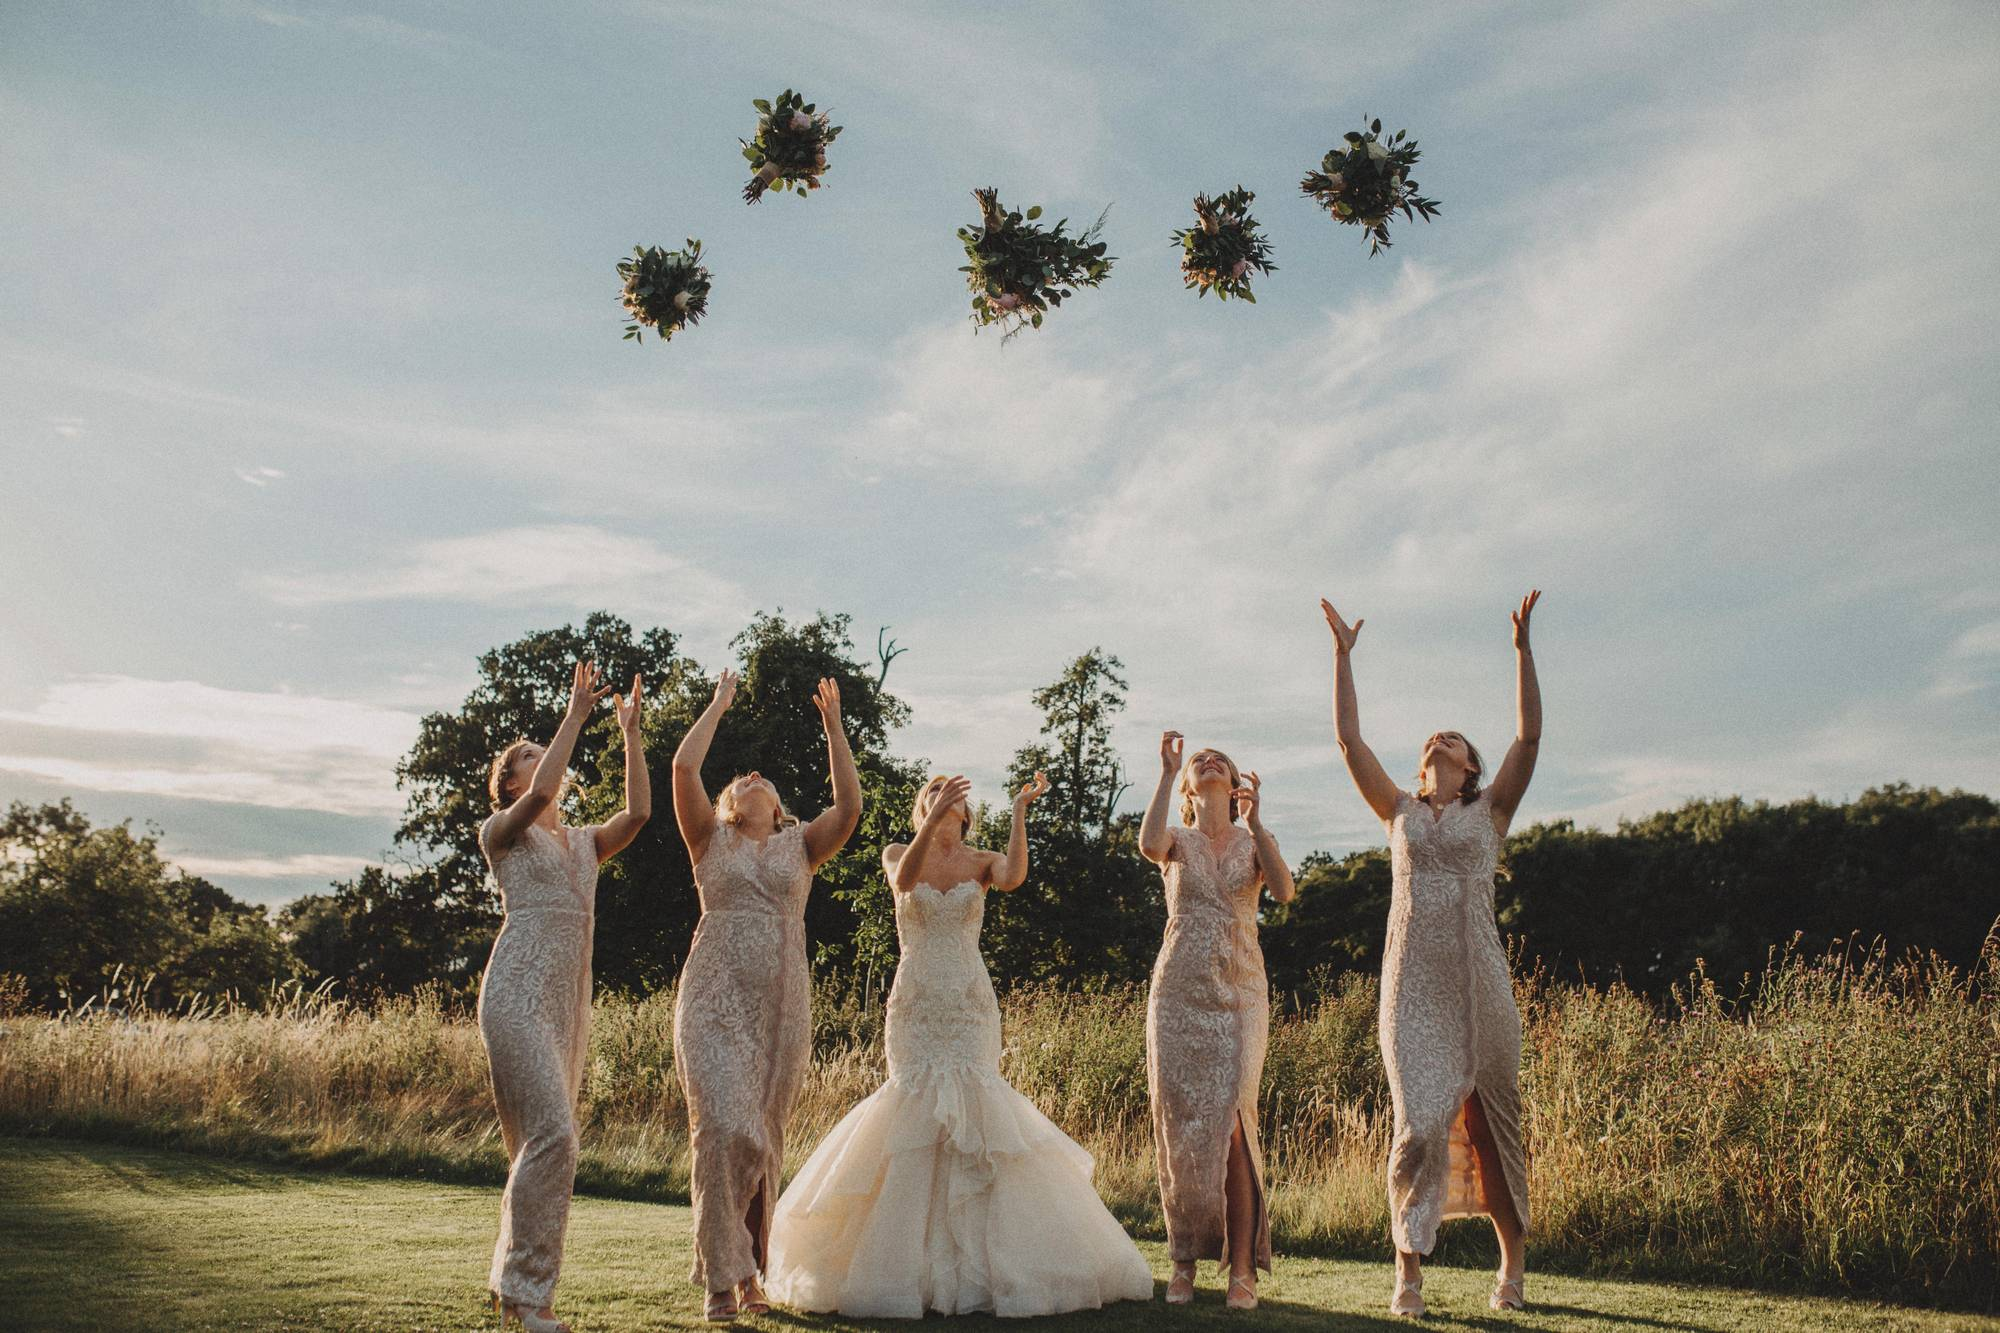 bridesmaids throwing flowers in the air